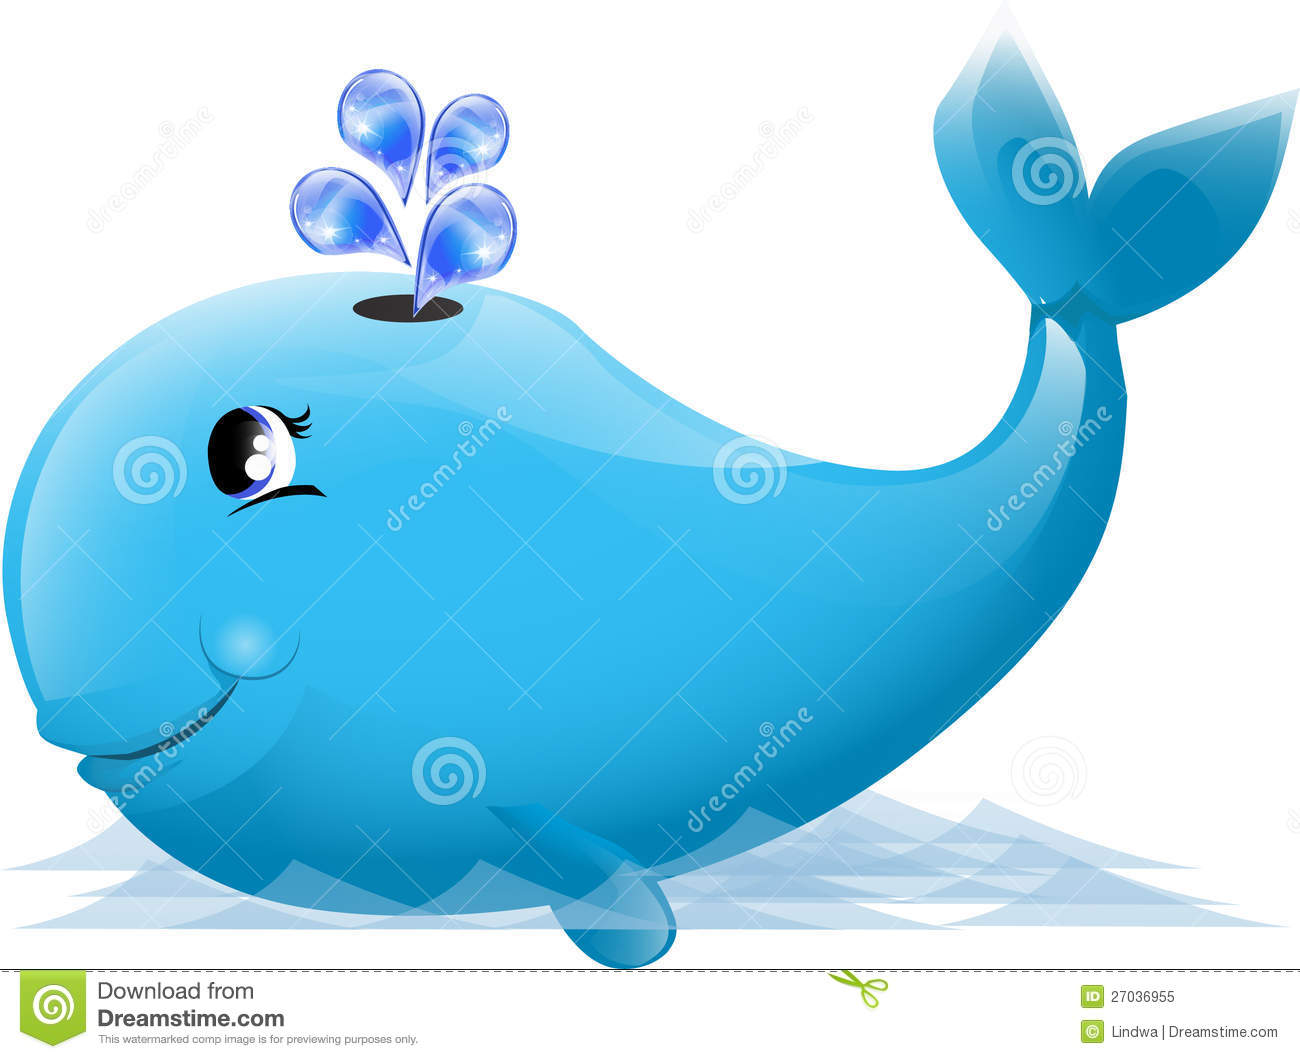 Royalty Free Stock Photo Illustration Cute Whale Image27036955 on beluga whale cartoon